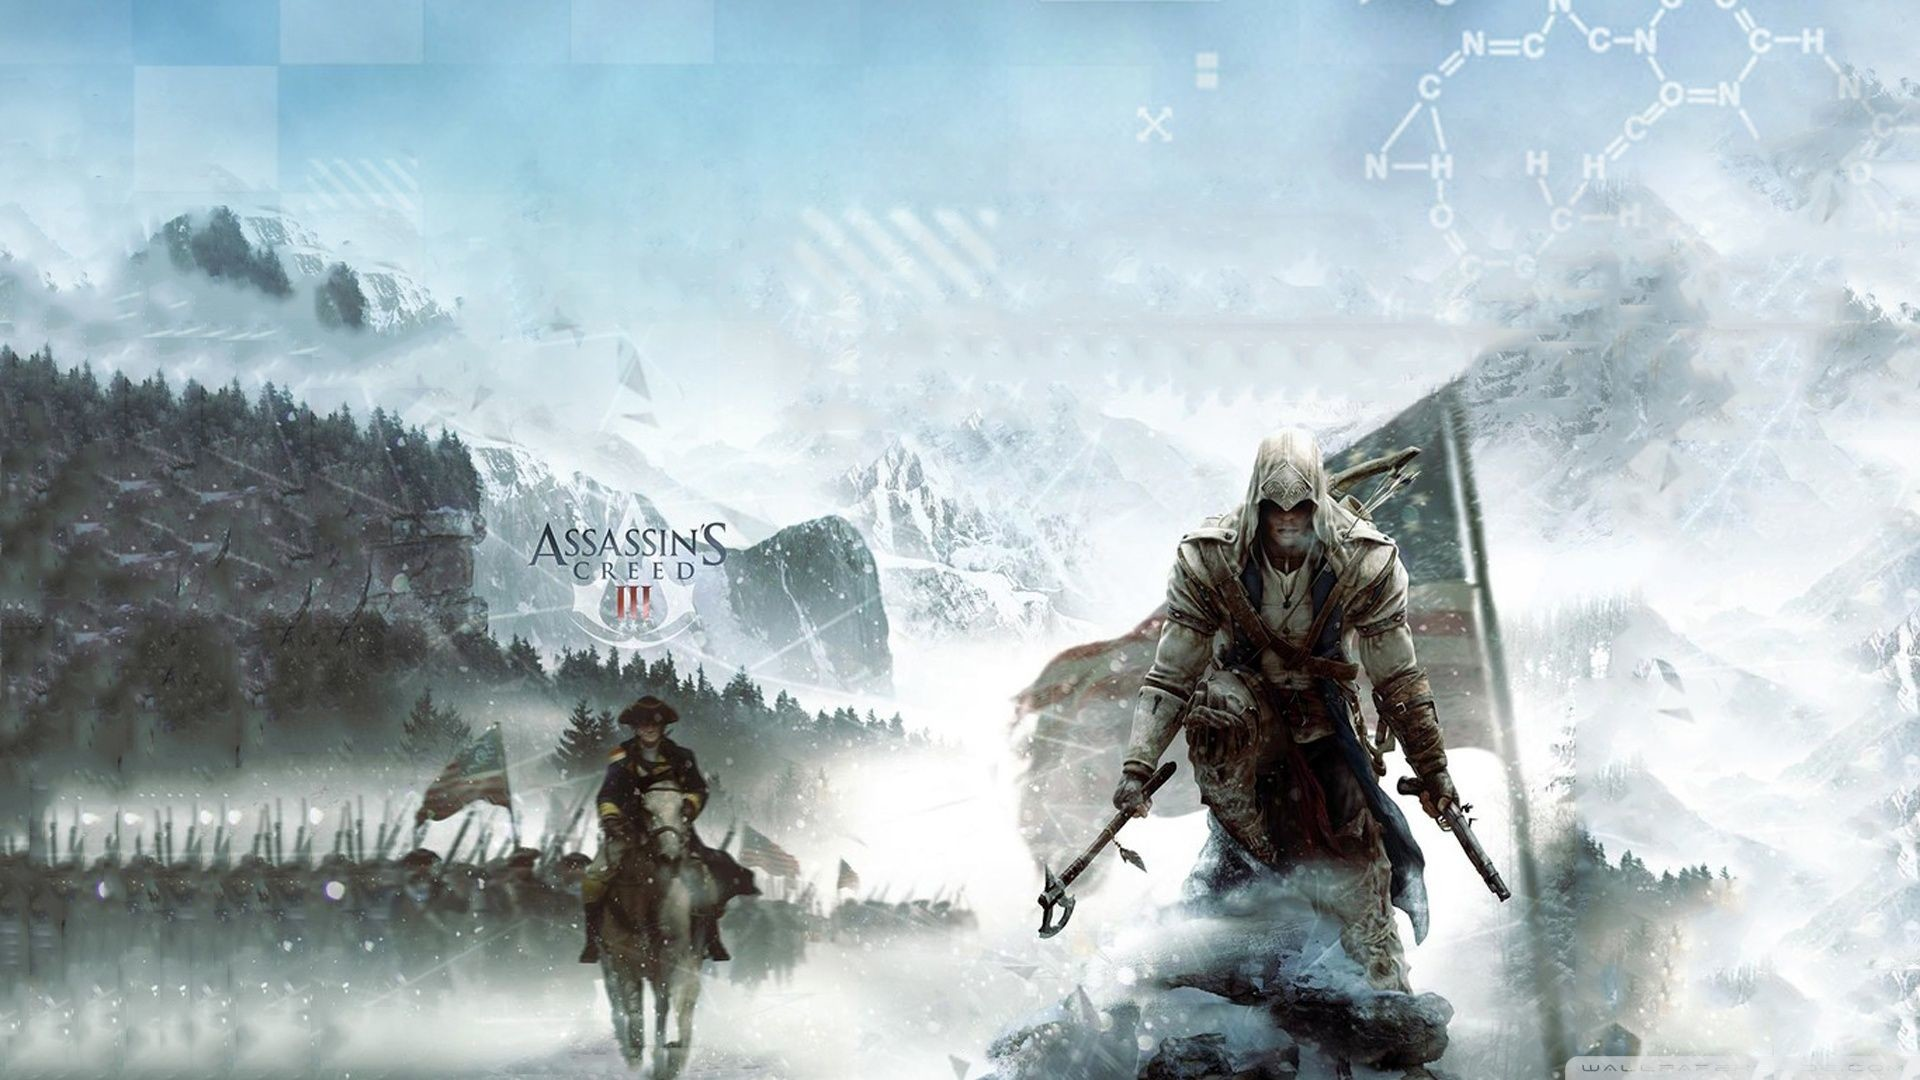 Res: 1920x1080, 'Assassin's Creed III' is officially going to the American Revolution. A  Game Informer cover and new box art shows a gorgeous vision of Ubisoft's ...